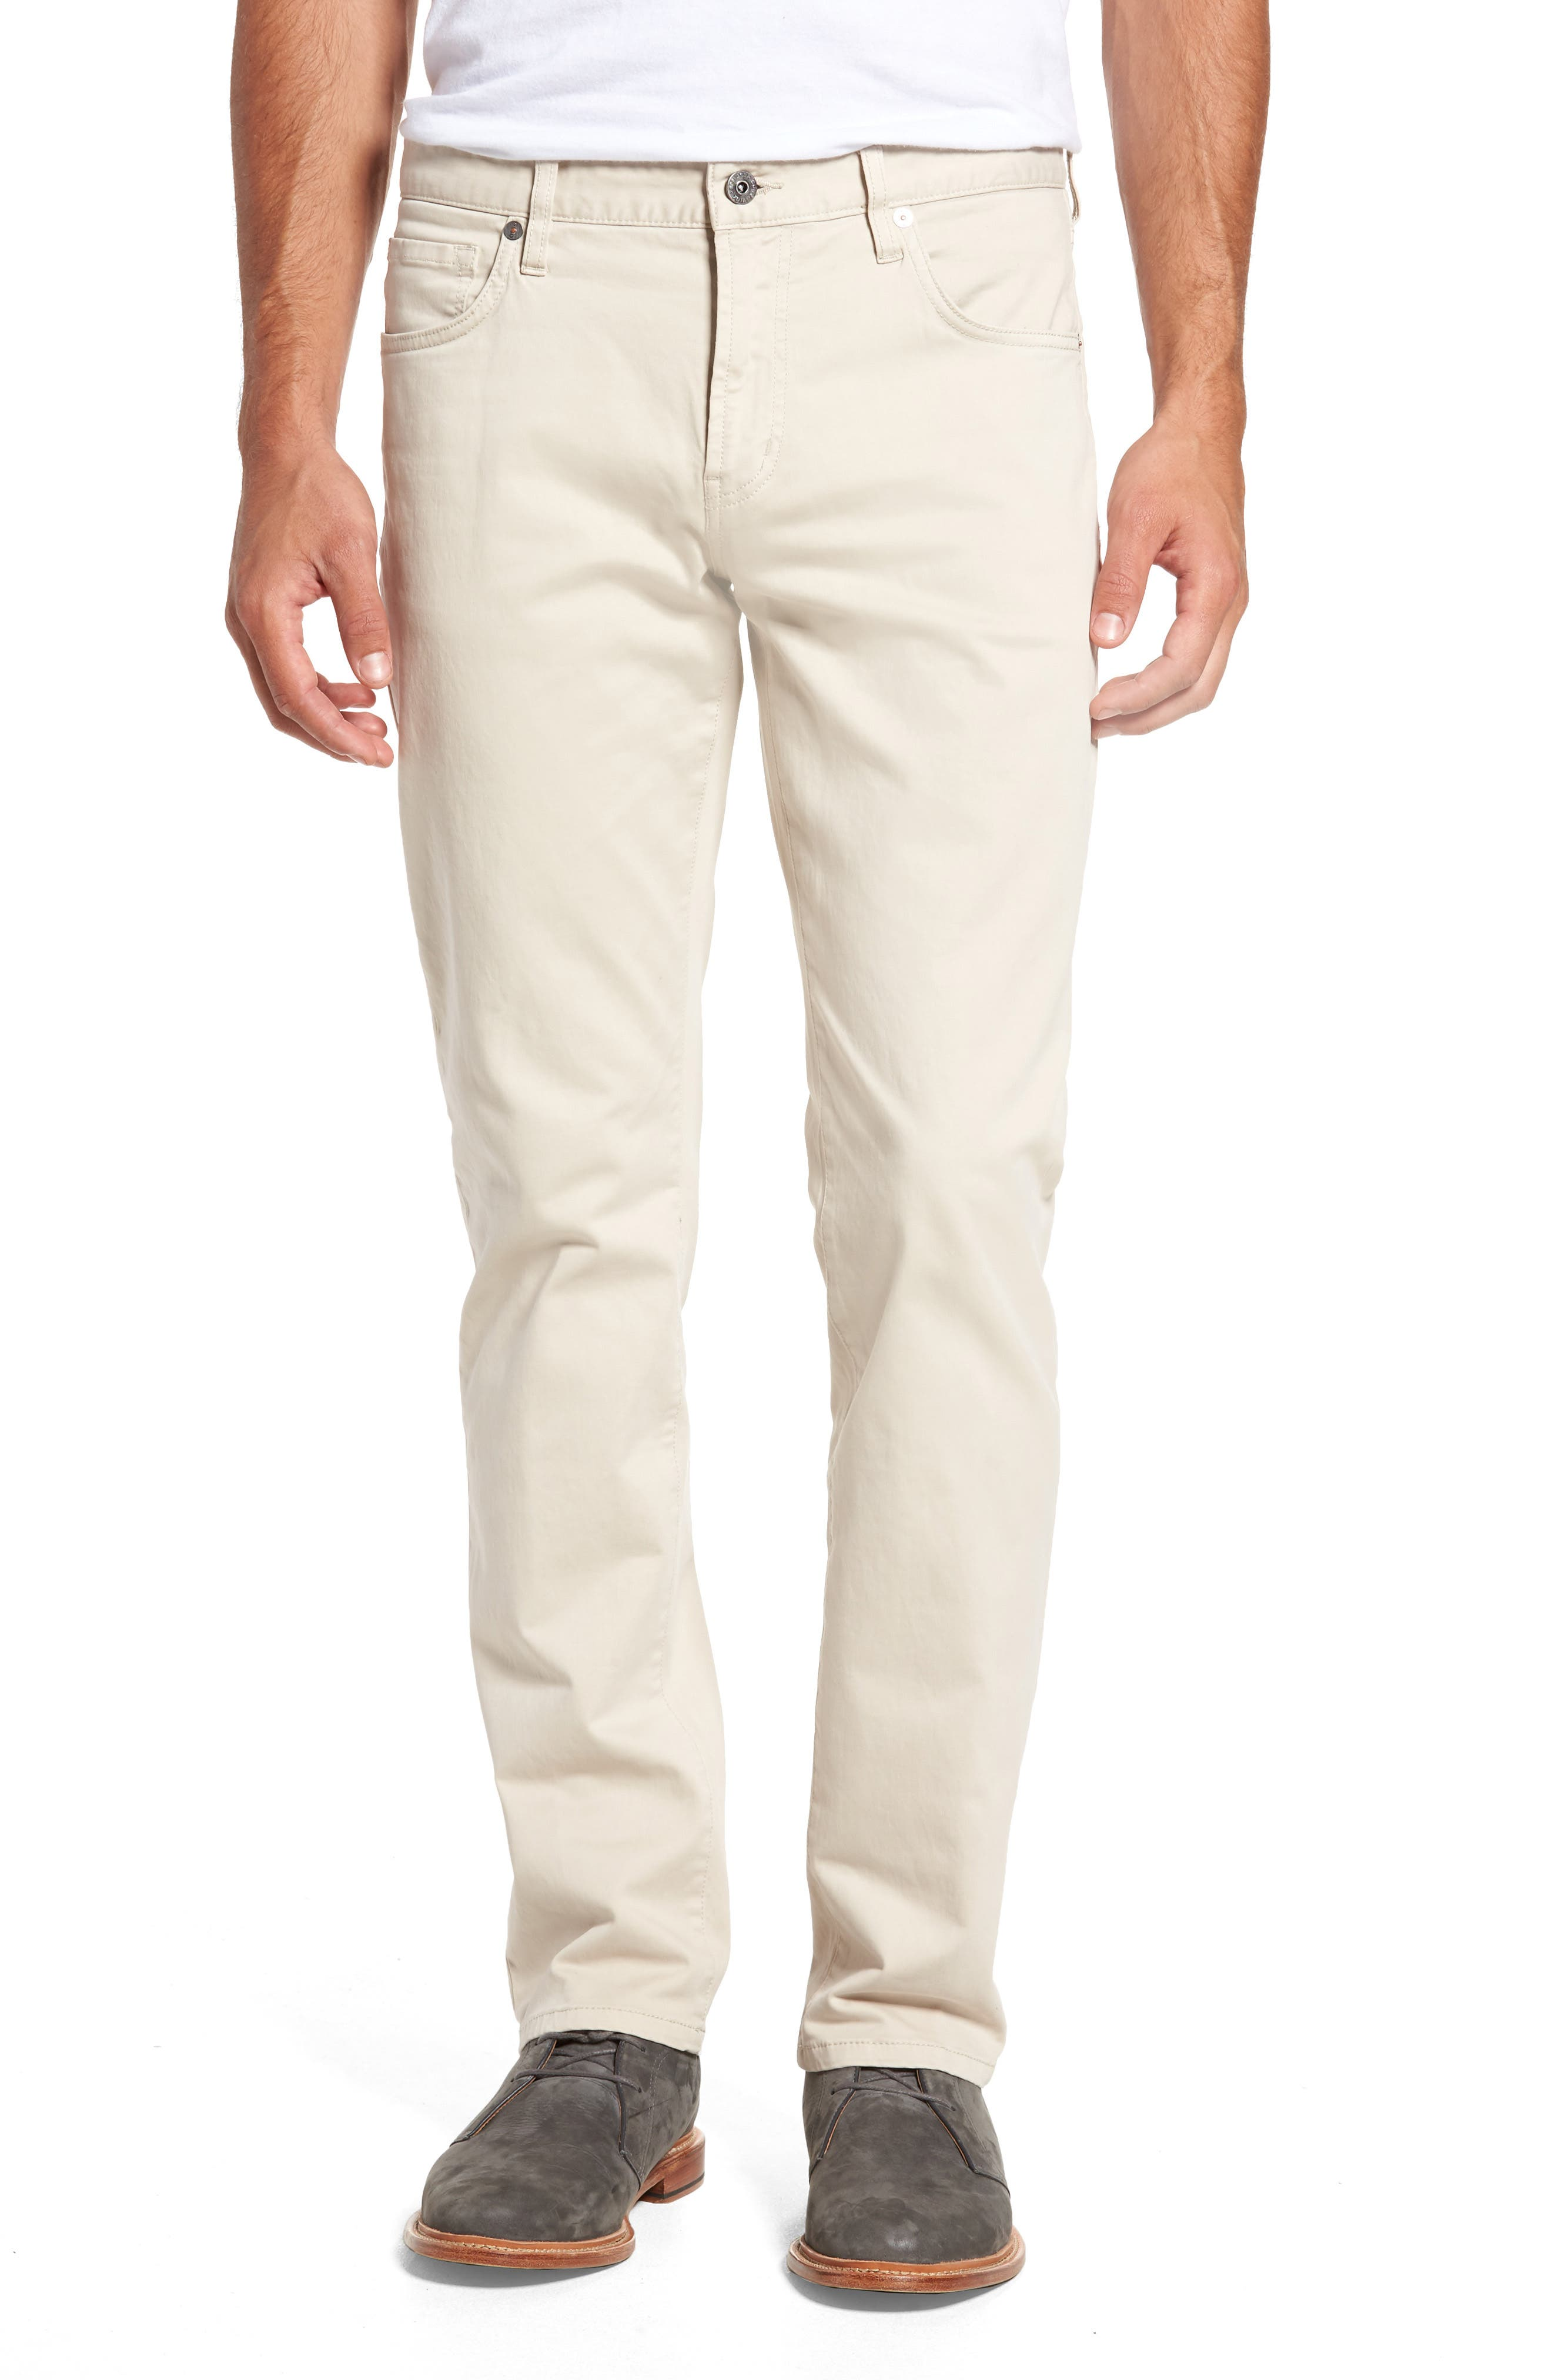 7 Diamonds Brushed Twill Five-Pocket Pants